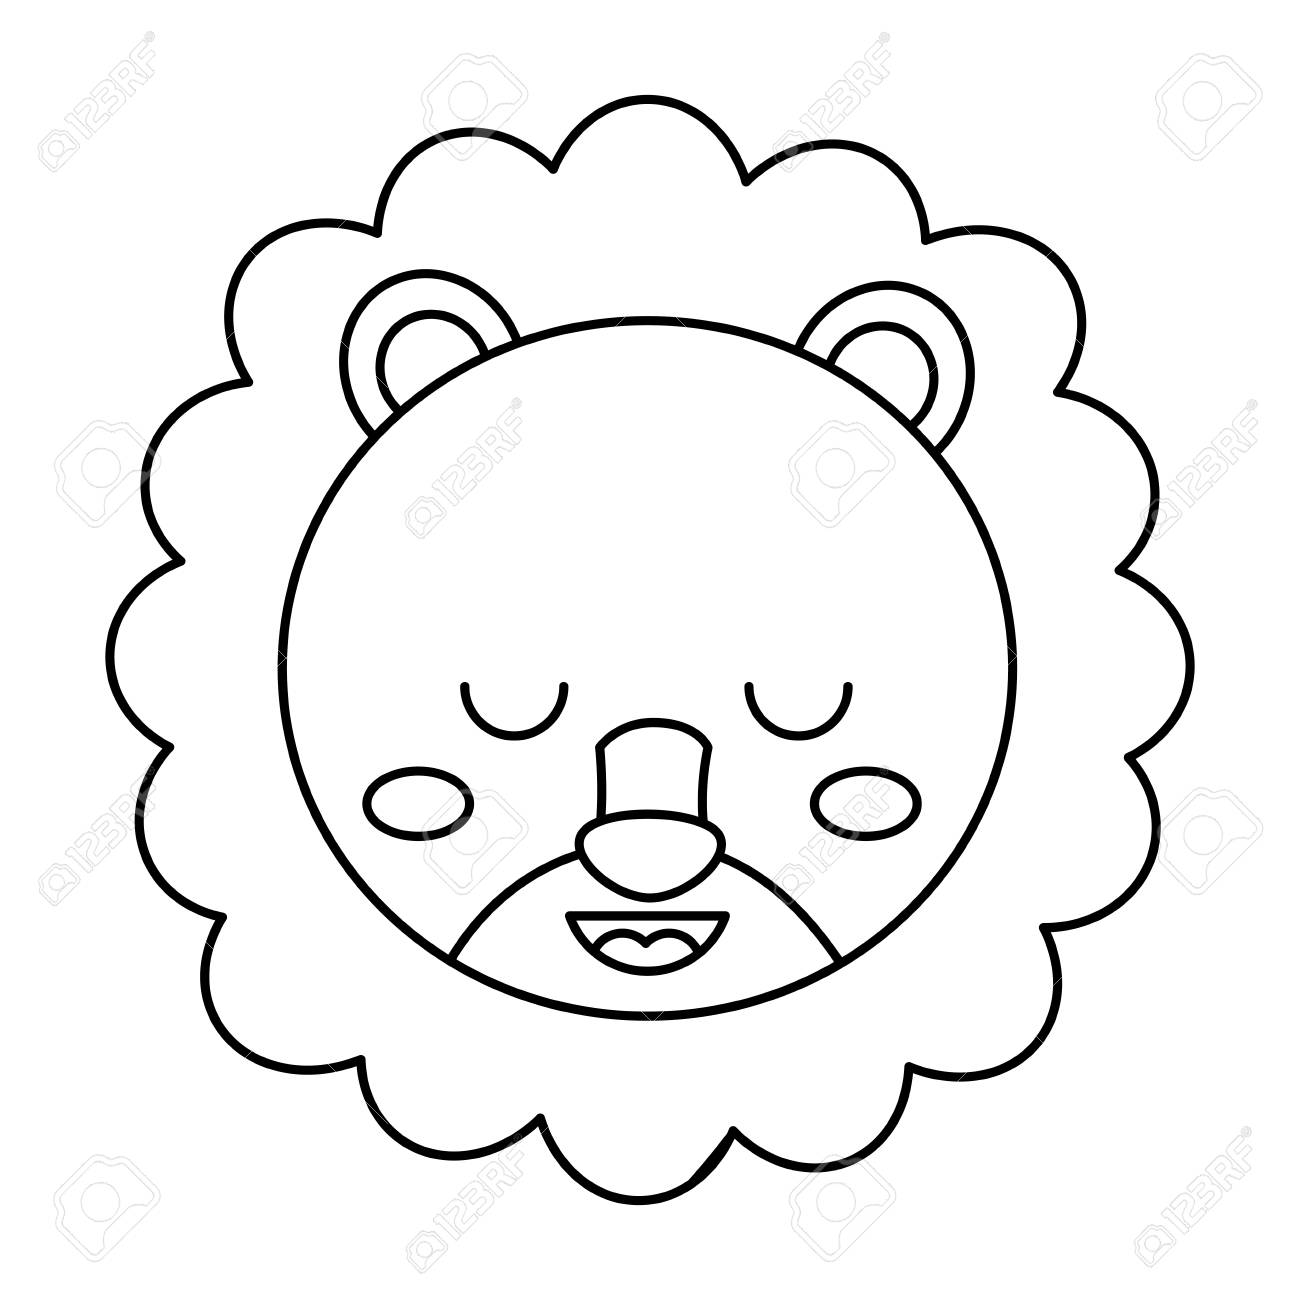 Cute Head Lion Animal Close Eyes Cartoon Vector Illustration Royalty Free Cliparts Vectors And Stock Illustration Image 93474778 Find over 100+ of the best free lion eyes images. cute head lion animal close eyes cartoon vector illustration